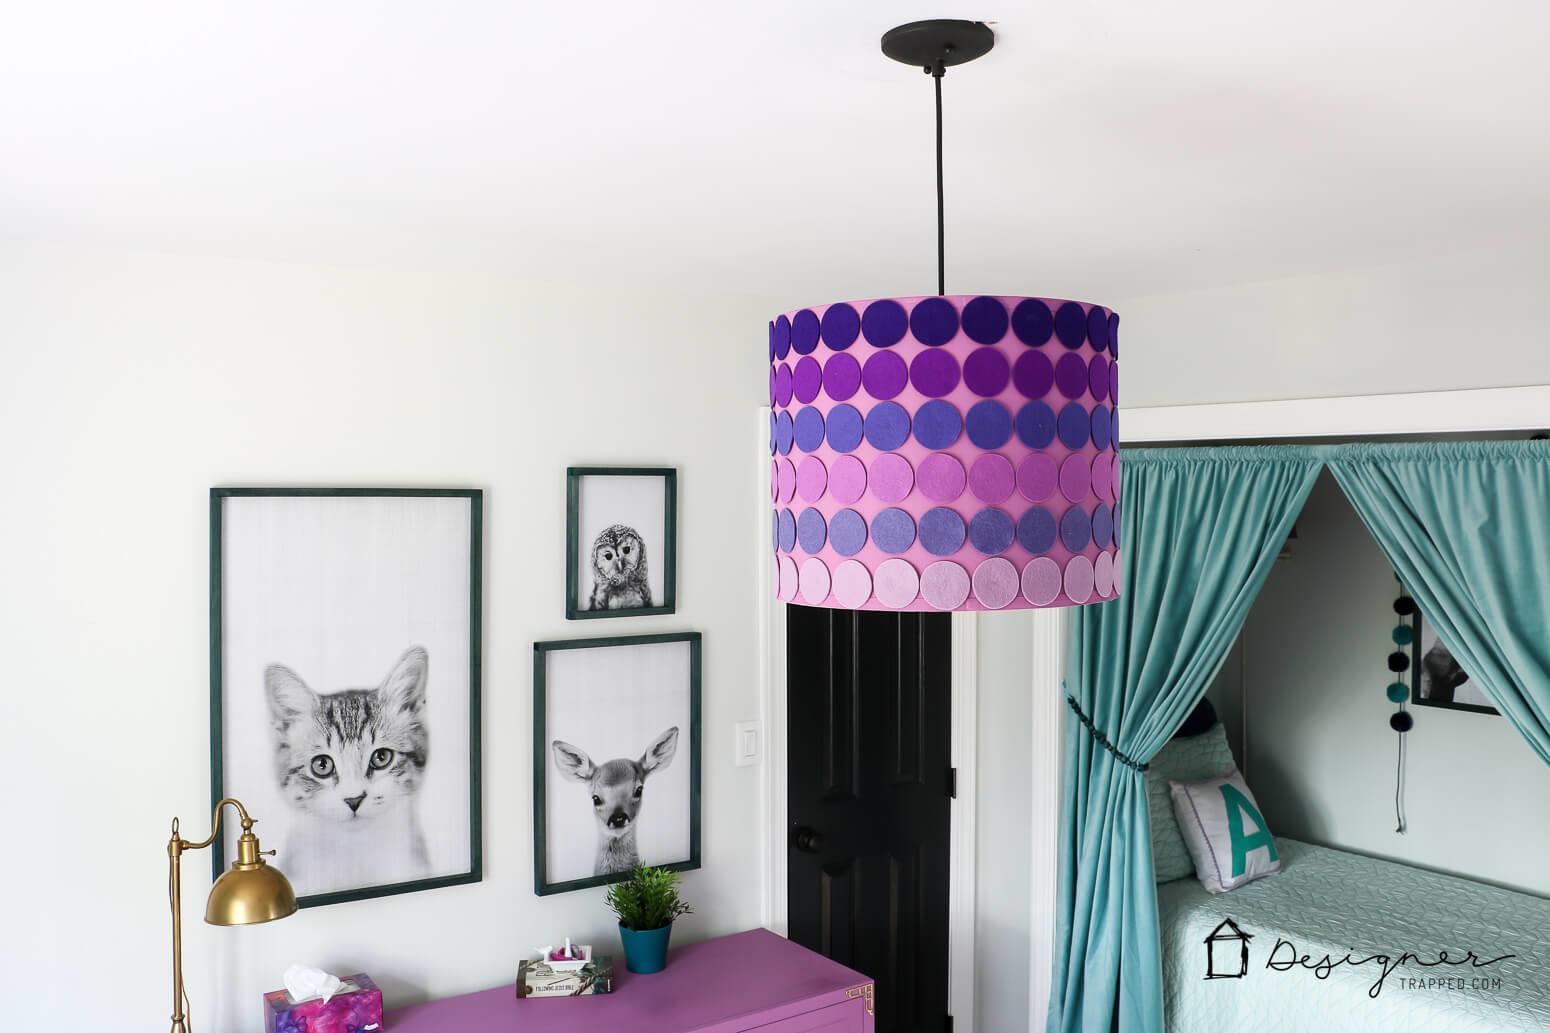 Diy Lampshade Ombre Style Designer Trapped